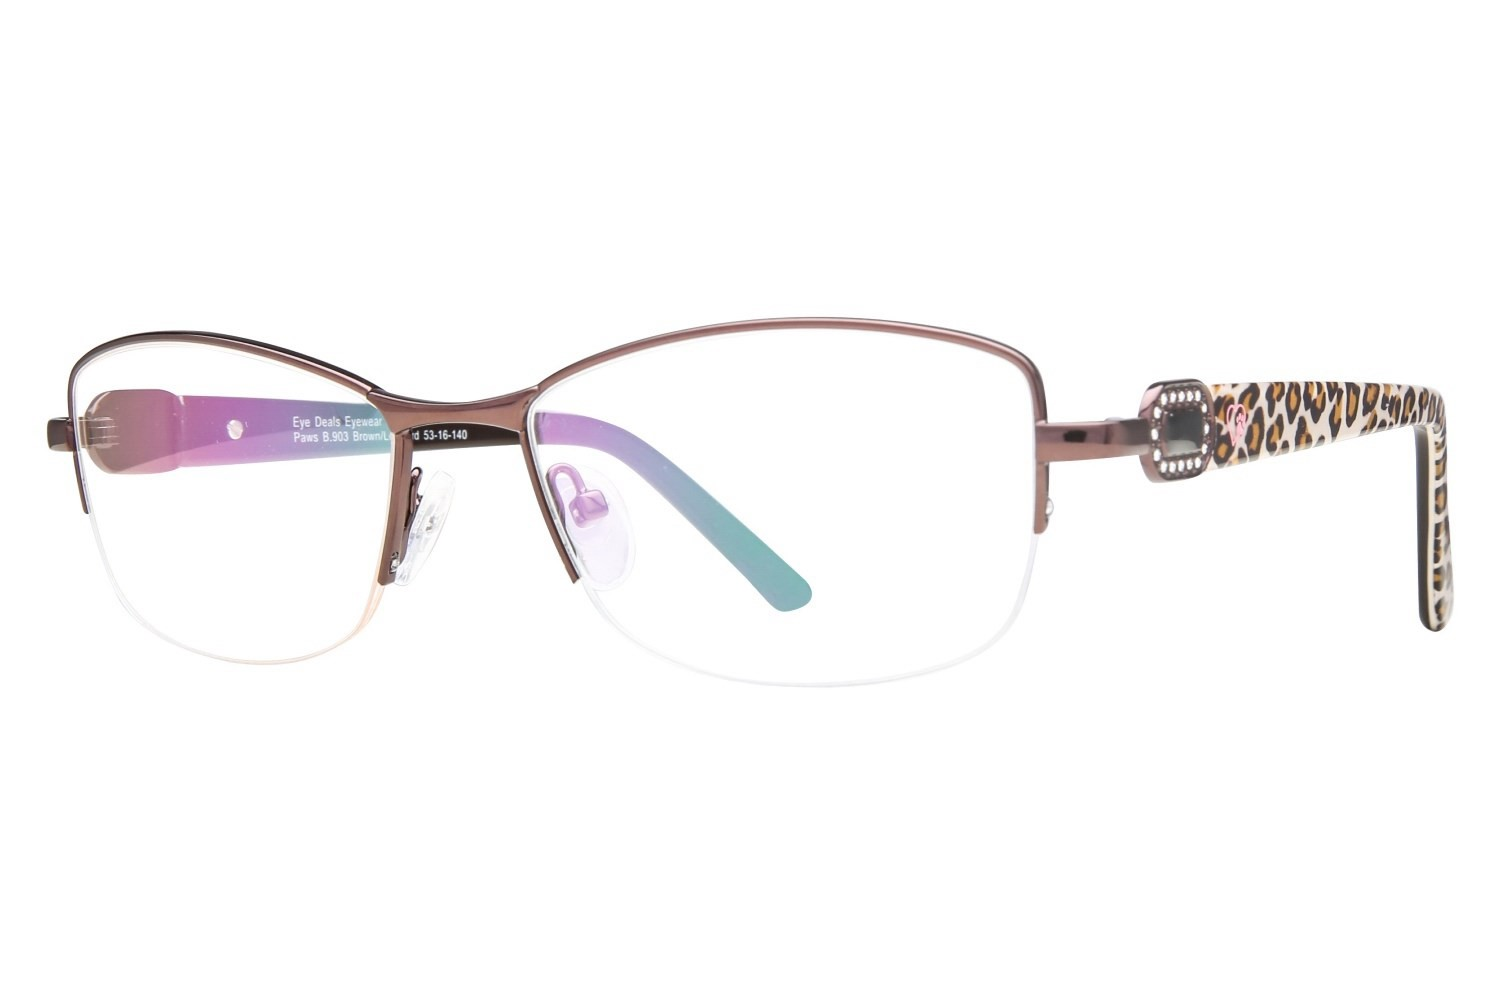 d7daeacf9bbe Review Paws n Claws B 903 Prescription Eyeglasses – Review Contact ...